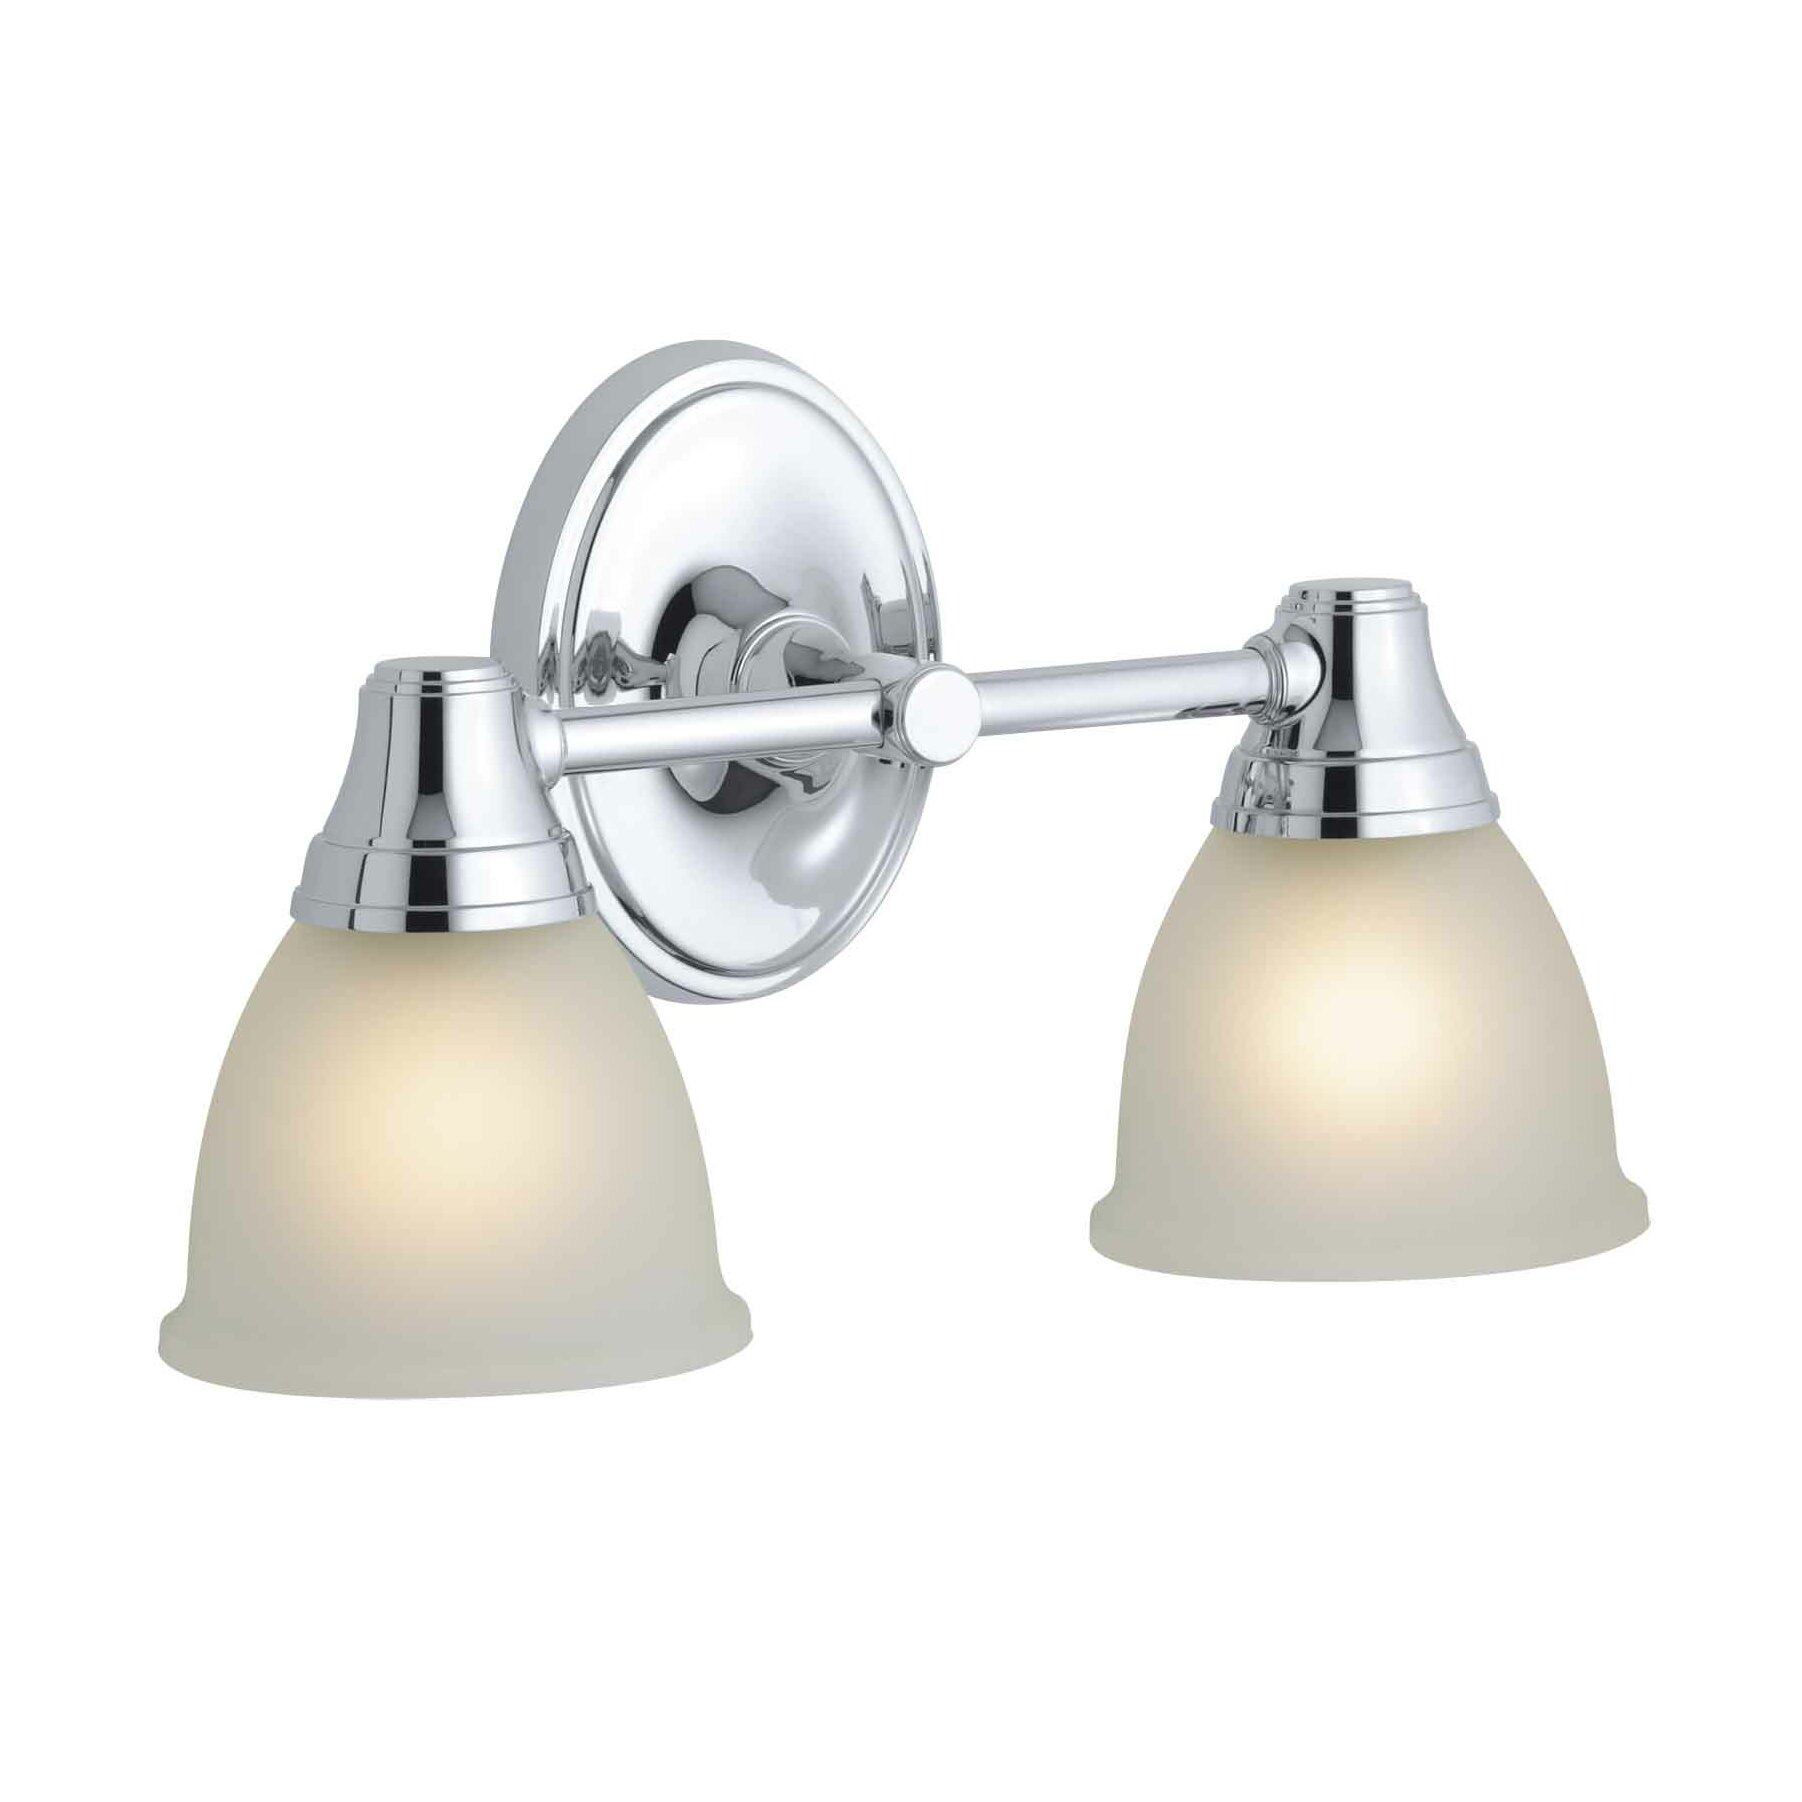 Fantastic KohlerK11423AFquotBancroftquot 3 Bulb Bathroom Light